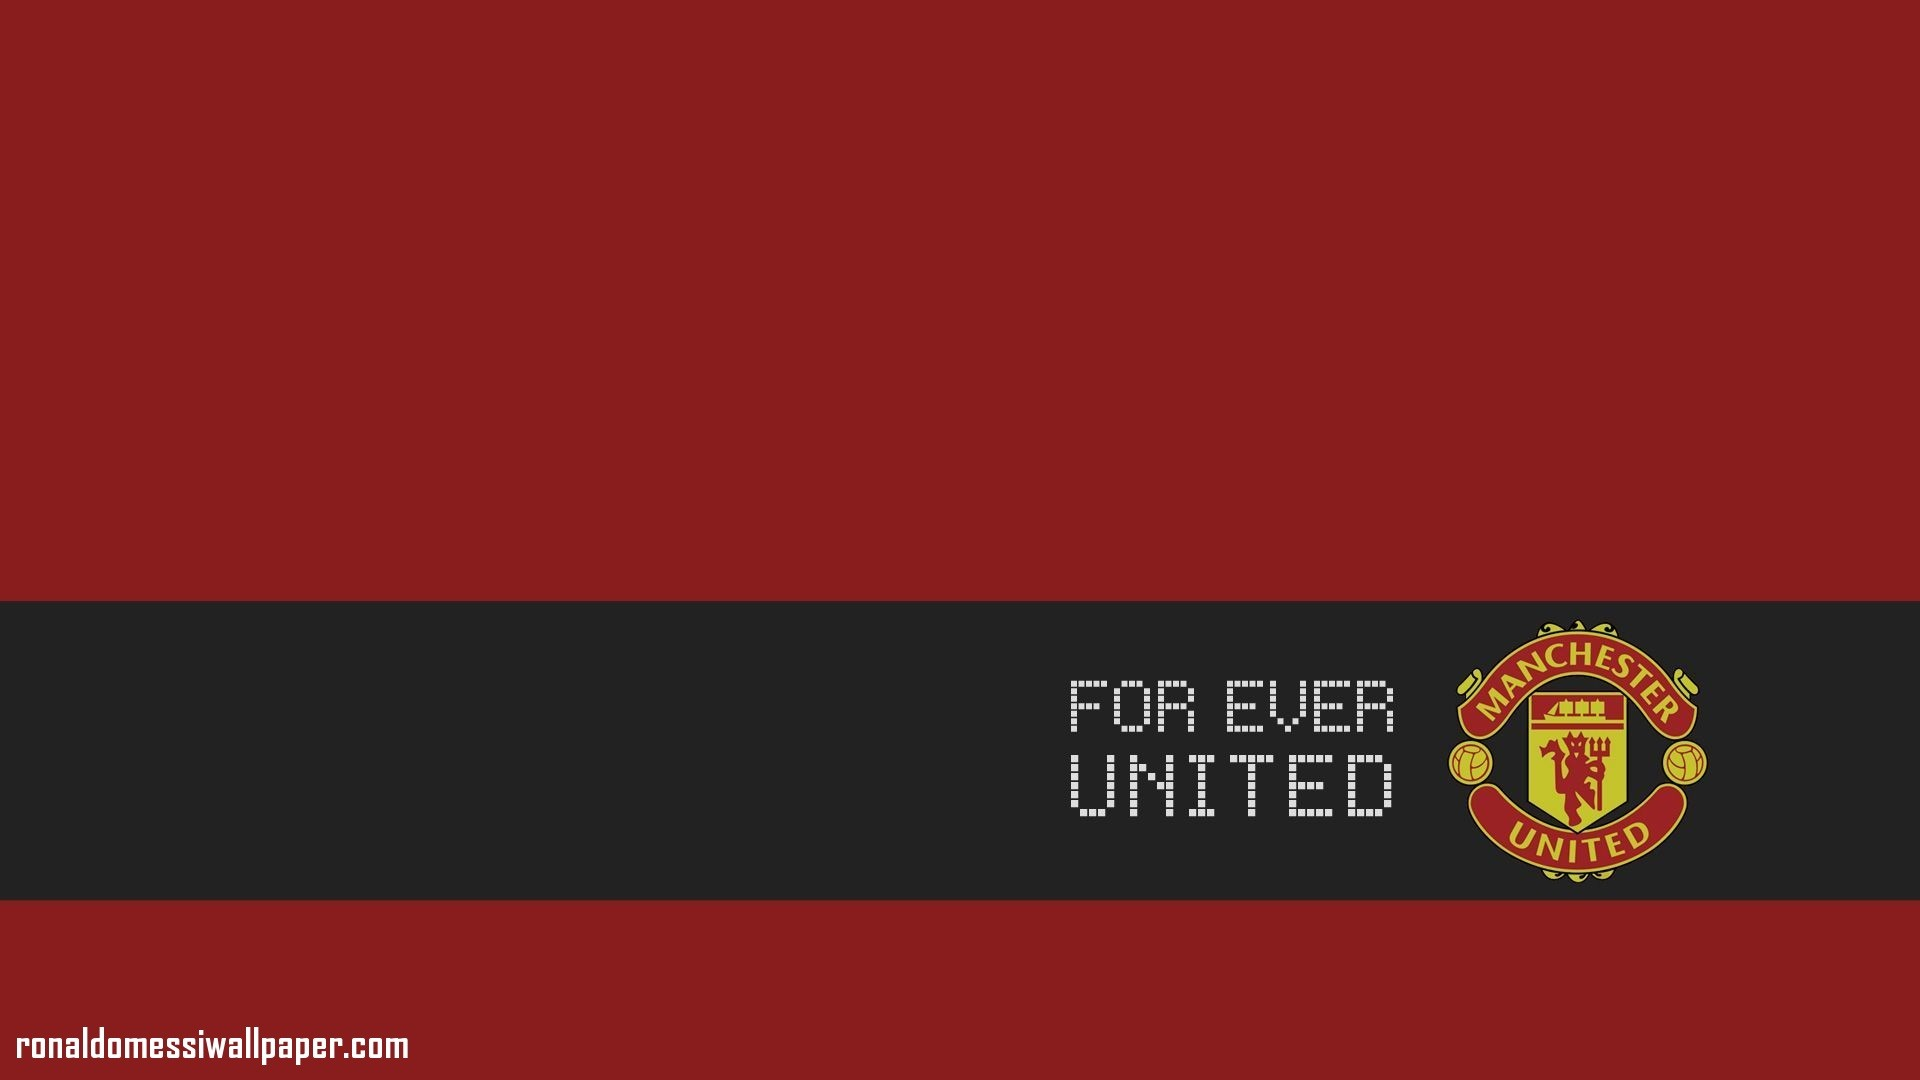 Man utd wallpaper 2018 77 images 1920x1080 manchester united wallpaper android s on google play voltagebd Images